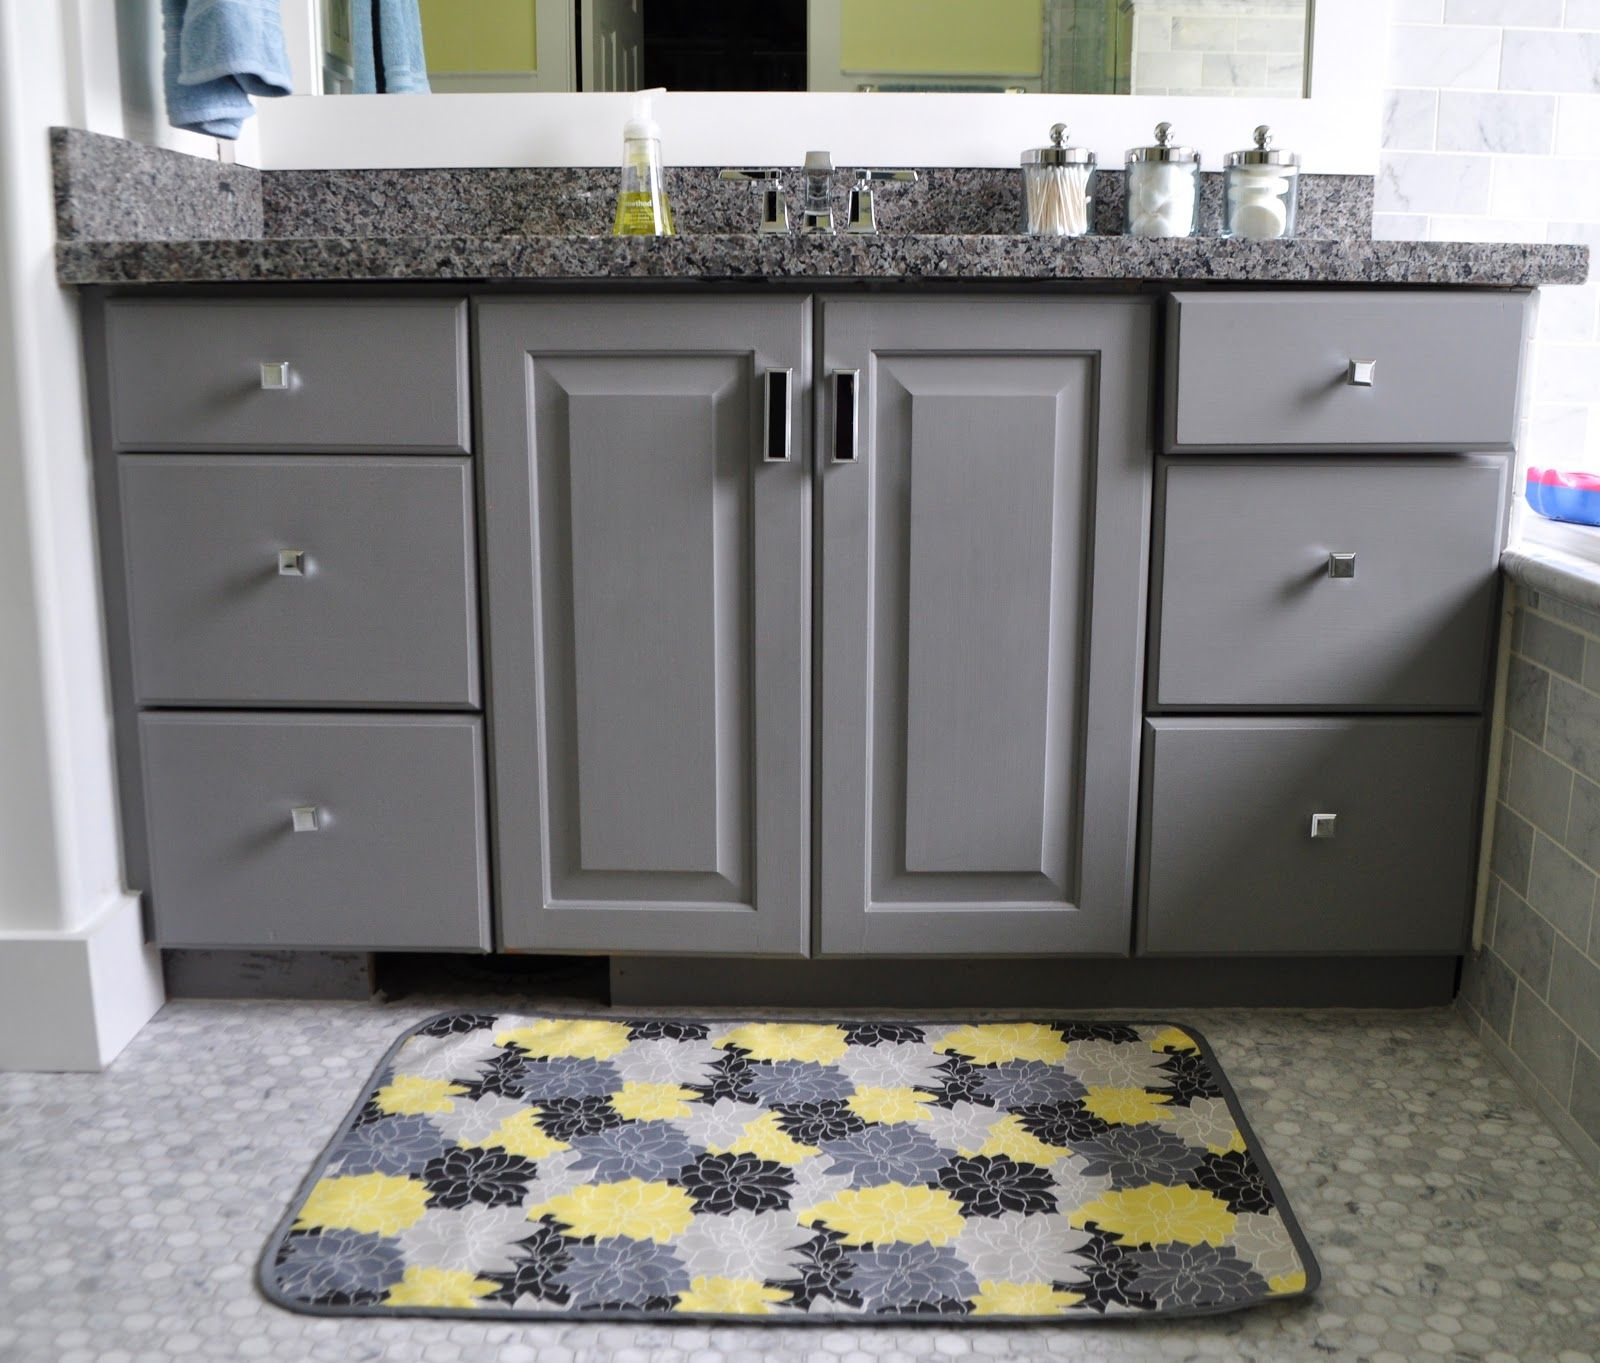 jd i beautiful on view fresh vanity pics as impressive grey double corner gr sink detailed with bathroom within